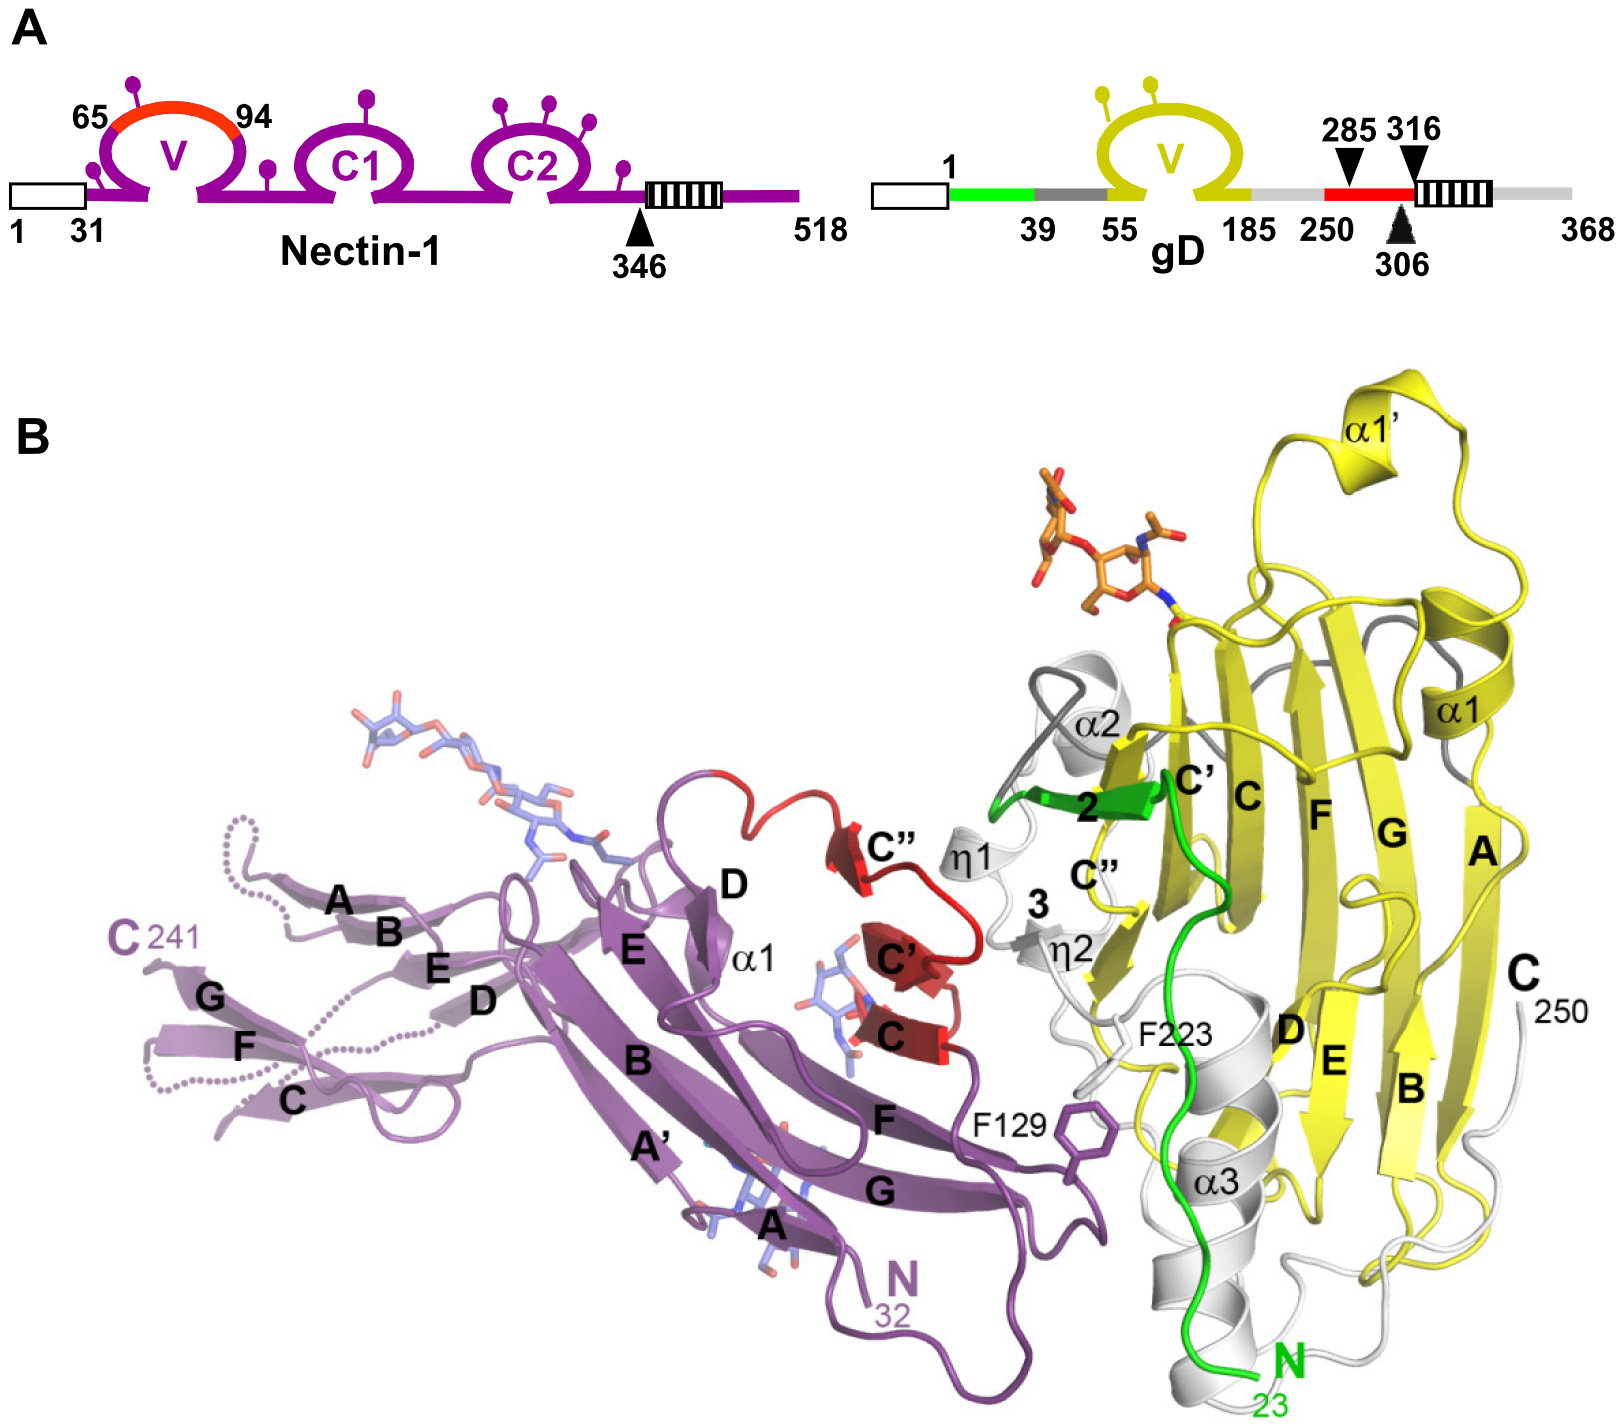 Structure of the gD/Nectin-1 complex.